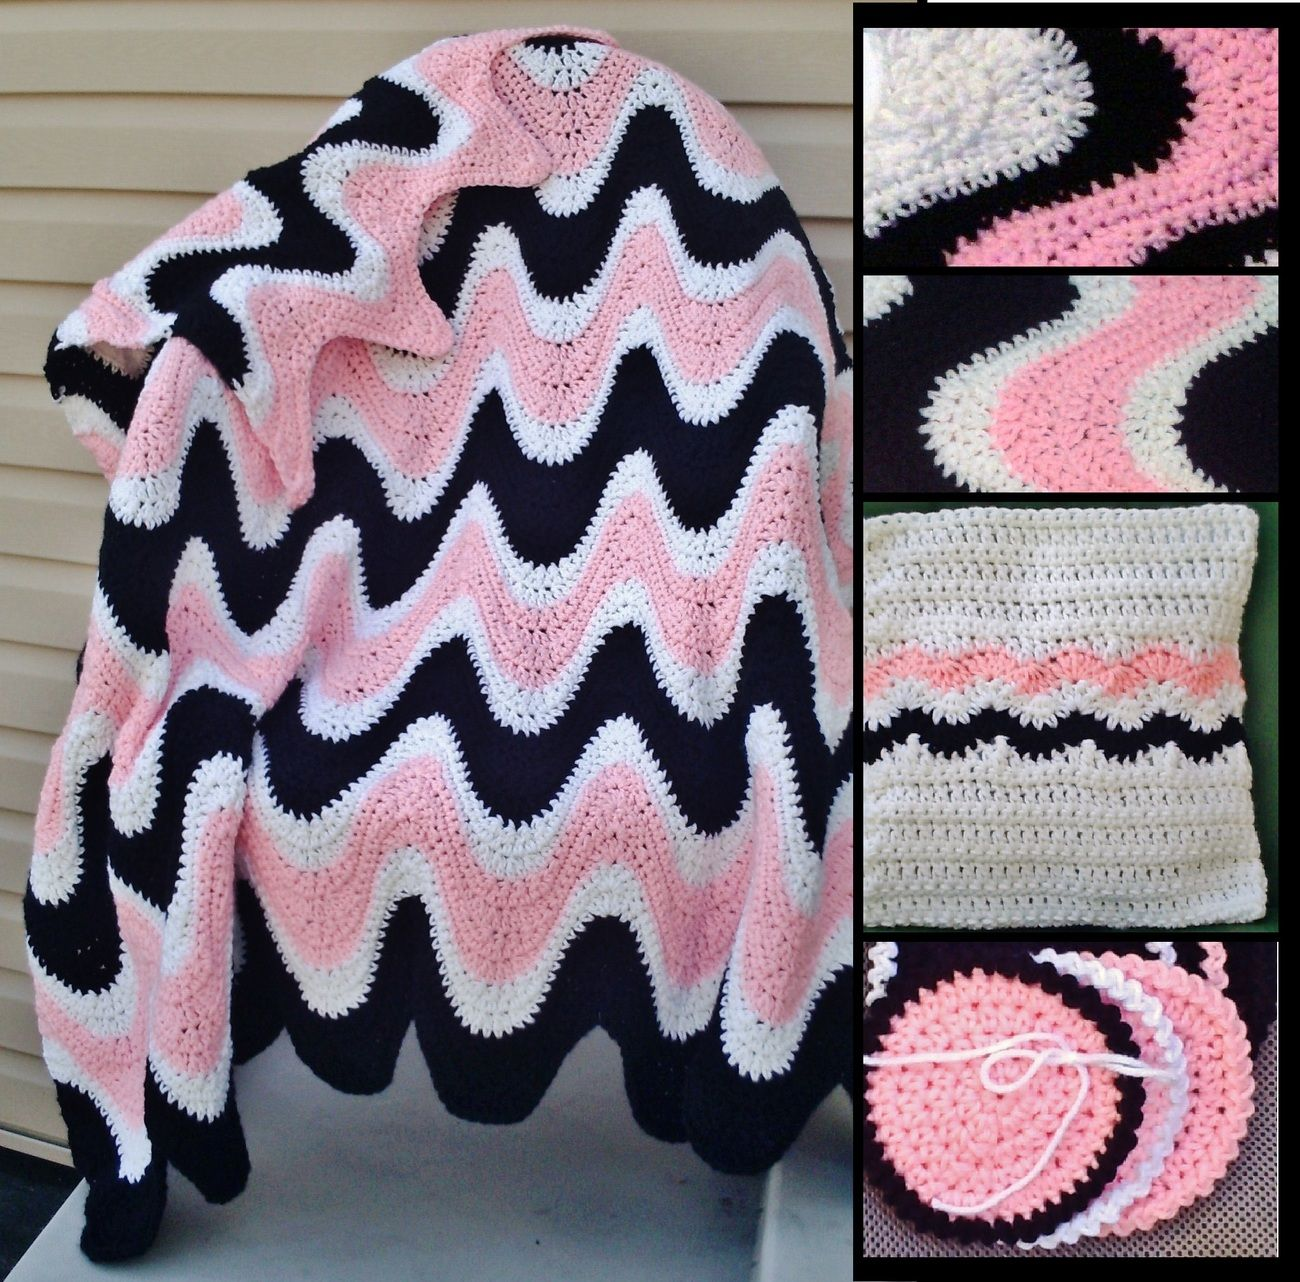 Crochet pattern 102b pdffor 3 color exaggerated ripple afghan crochet pattern 102b pdffor 3 color exaggerated ripple afghan pillow coasters bankloansurffo Images